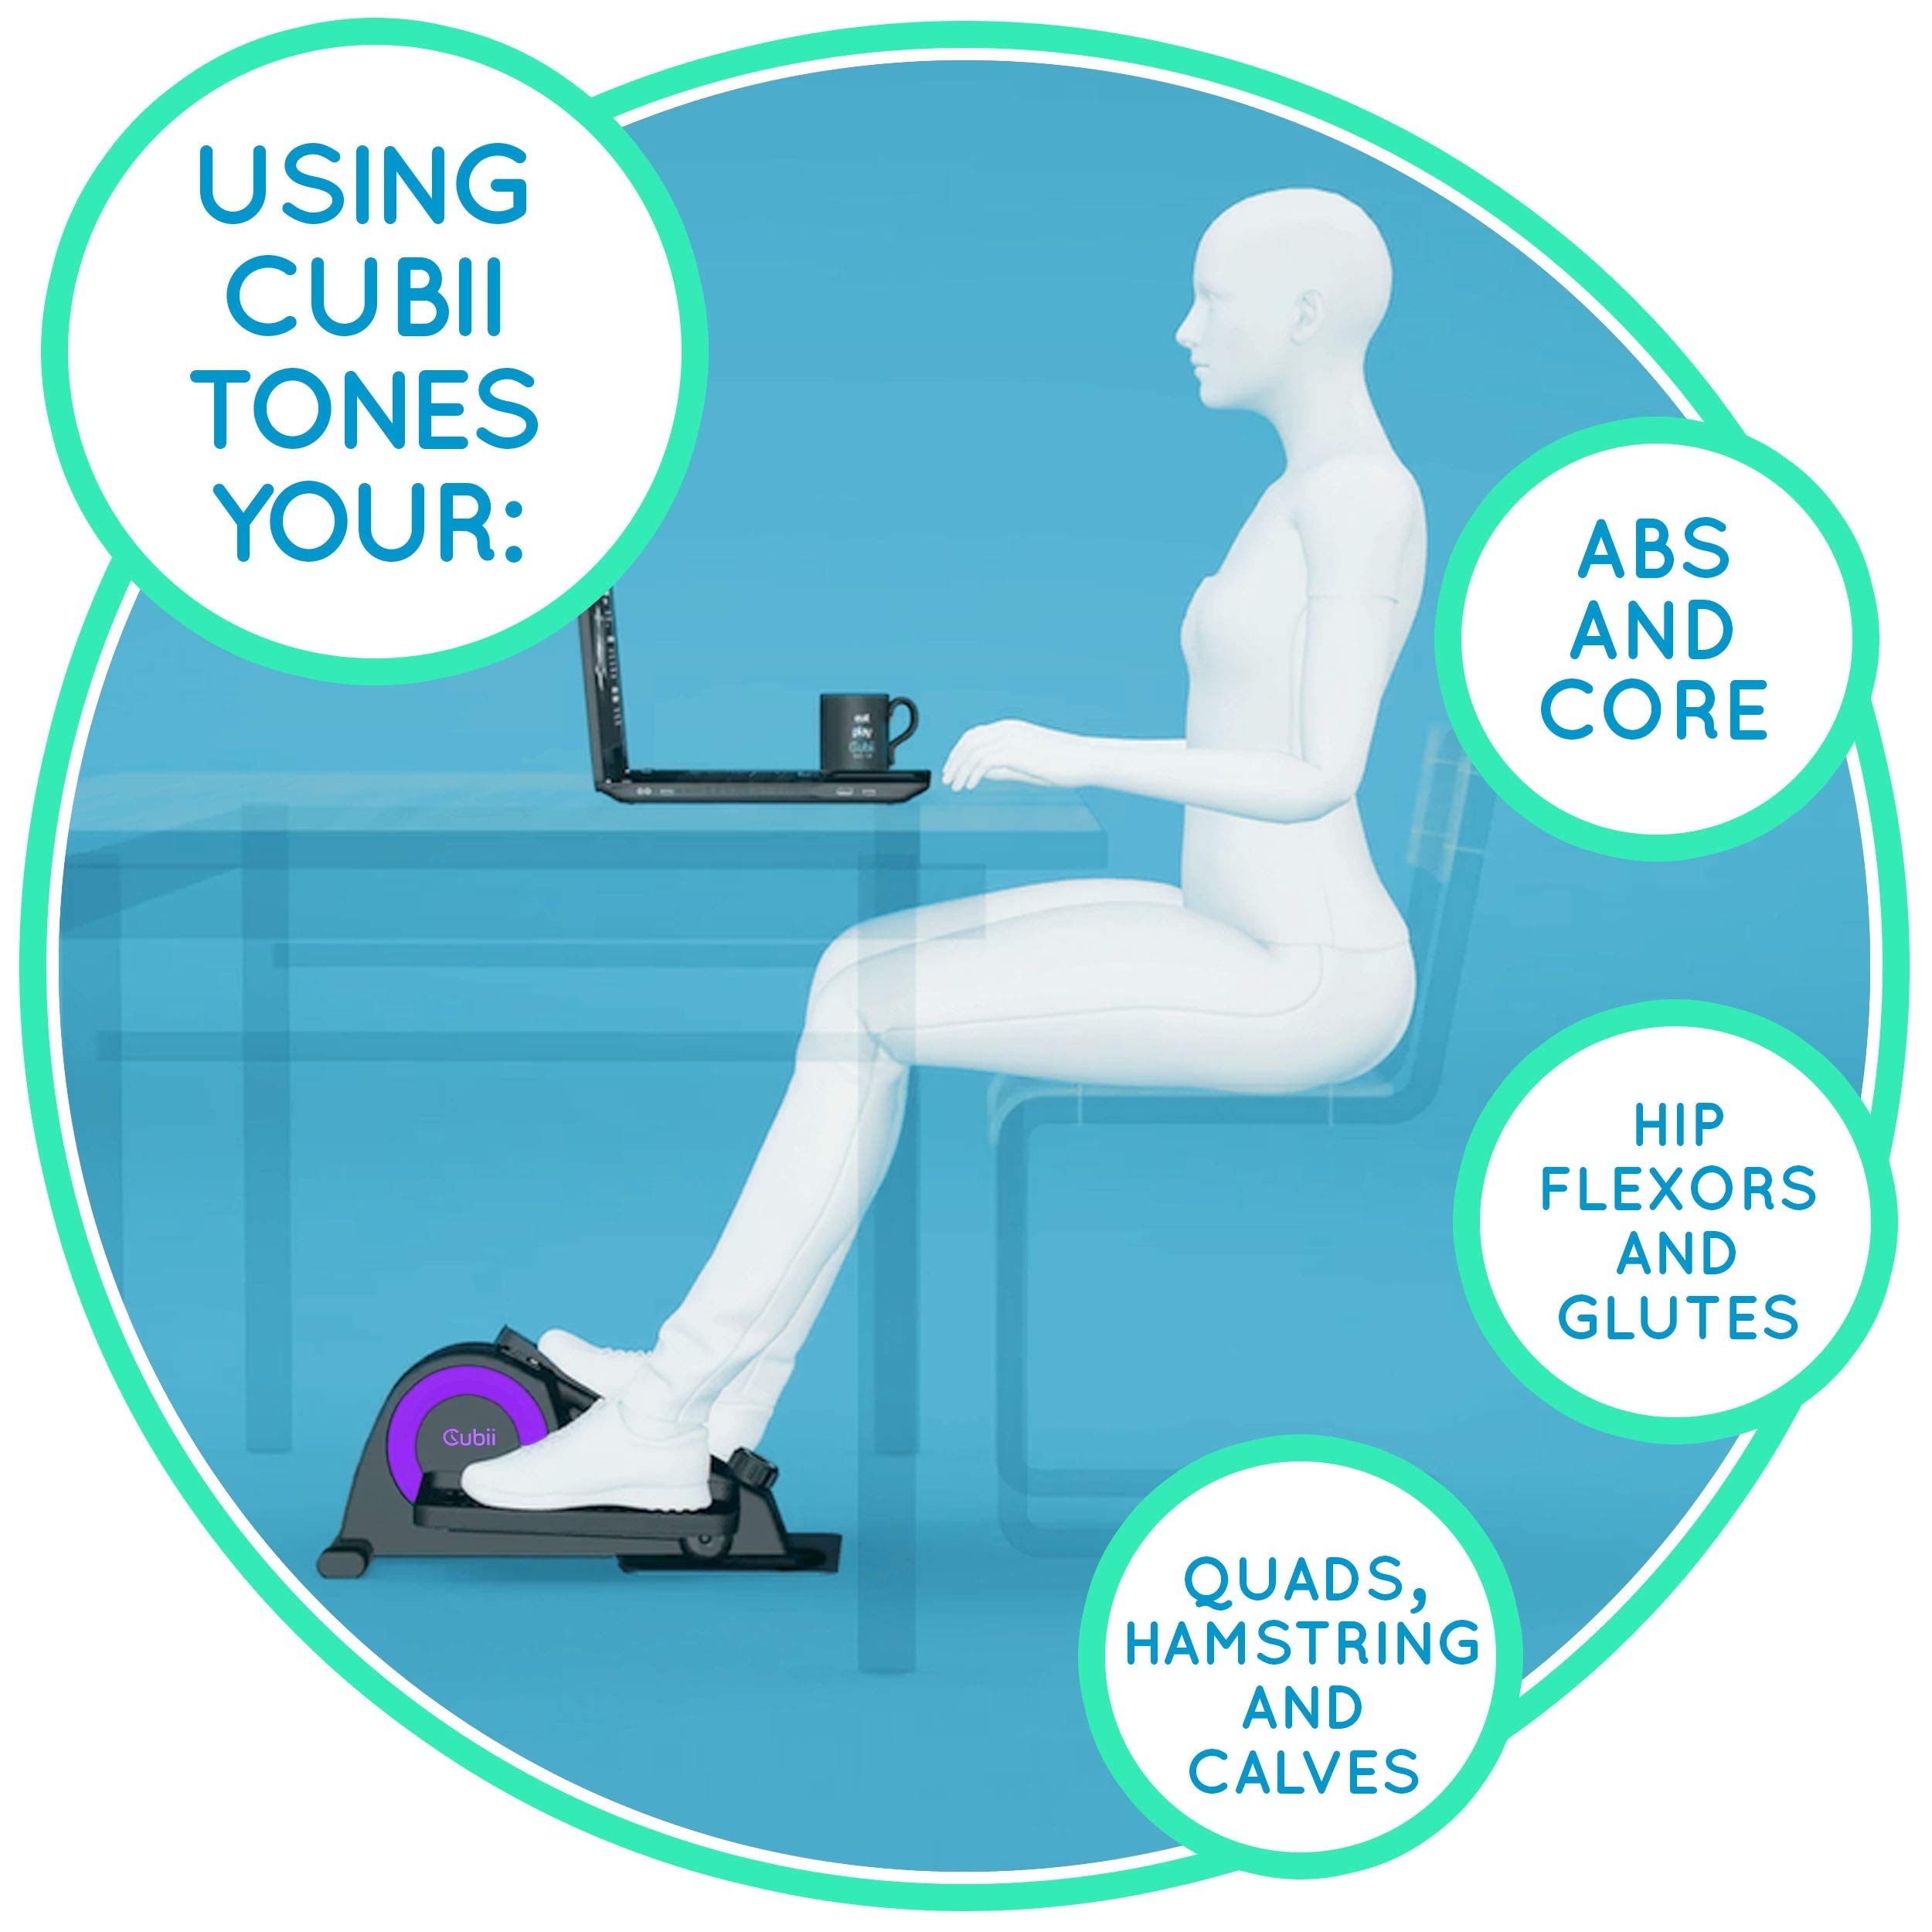 Cubii Jr: Desk Elliptical w/Built in Display Monitor, Easy Assembly, Quiet & Compact, Adjustable Resistance (Purple, One) by Cubii (Image #3)